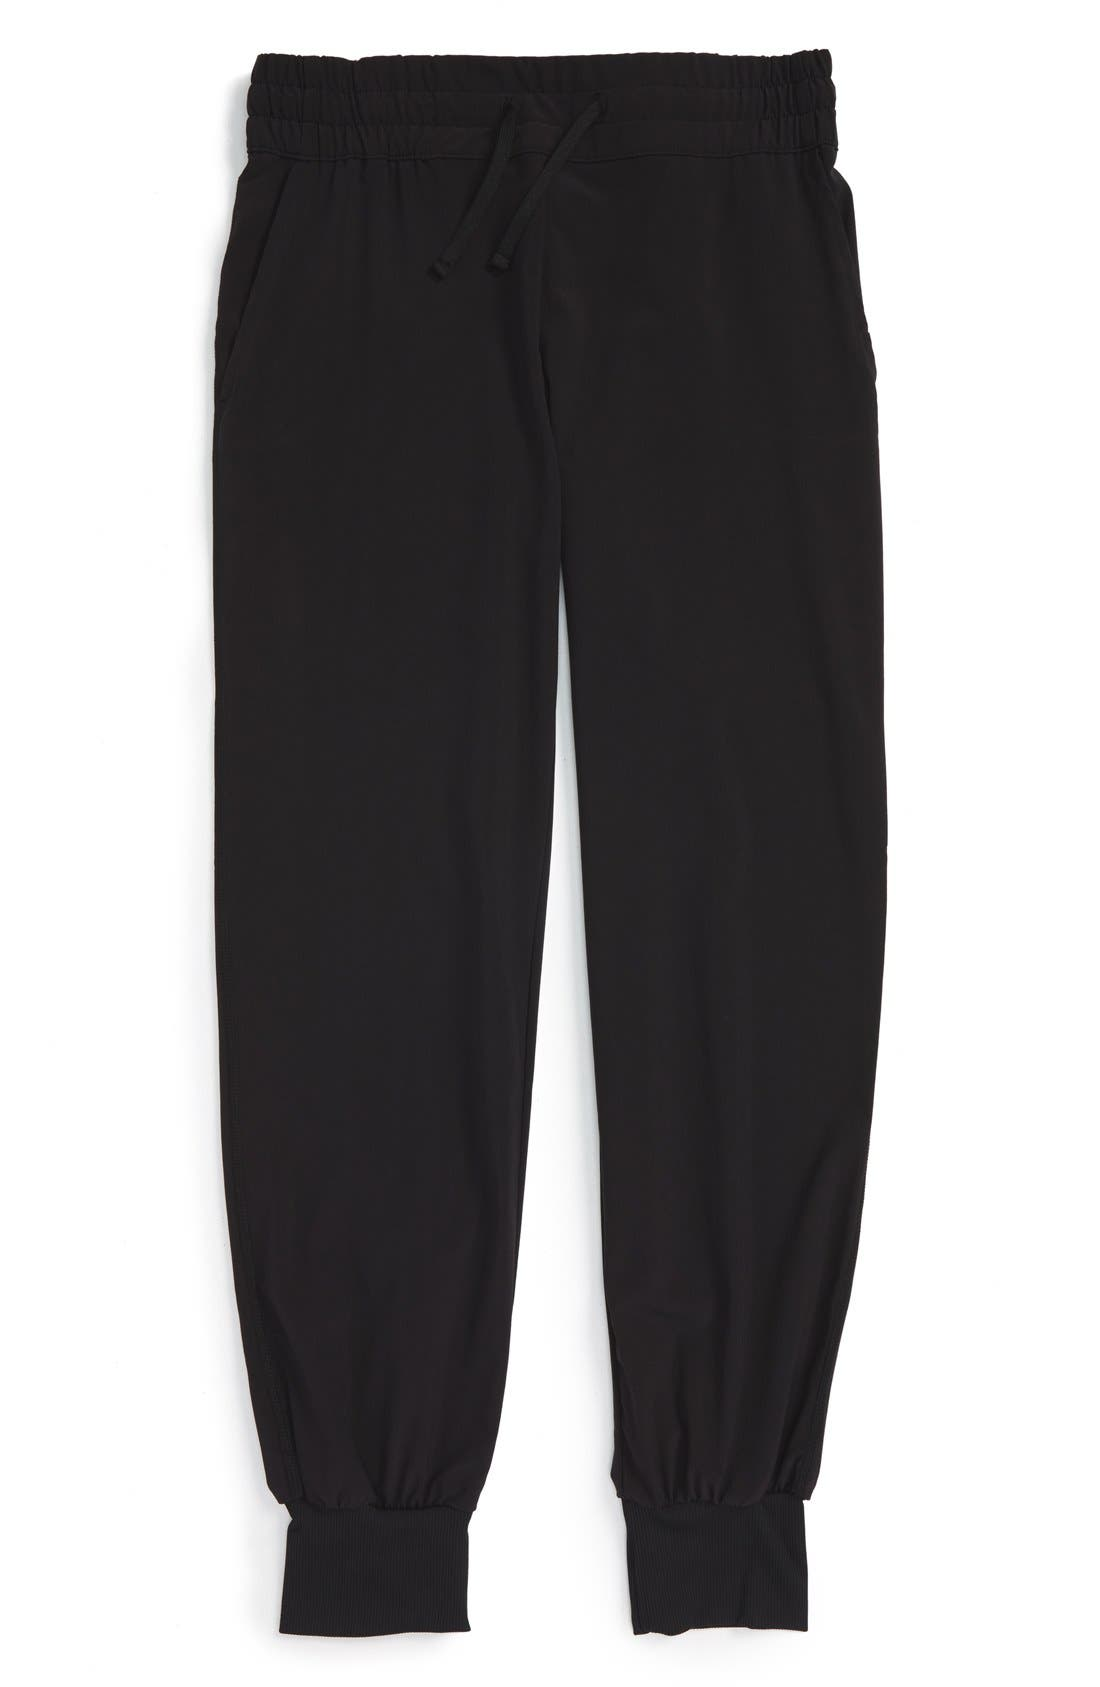 Dance Dance Pants,                             Main thumbnail 1, color,                             BLACK